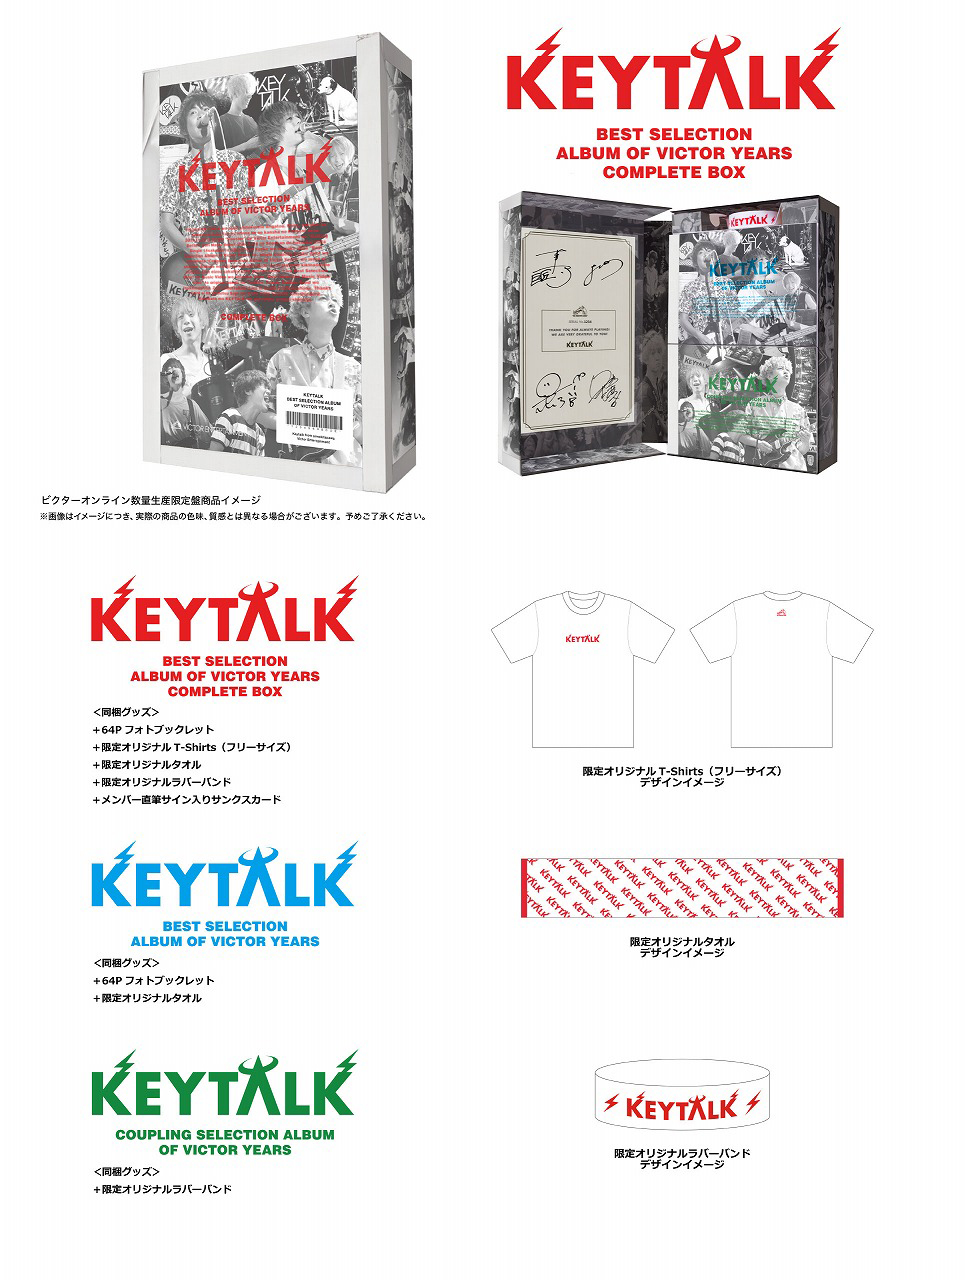 KEYTALK 数量生産限定! 『Best Selection Album of Victor Years Complete Box』 商品イメージ